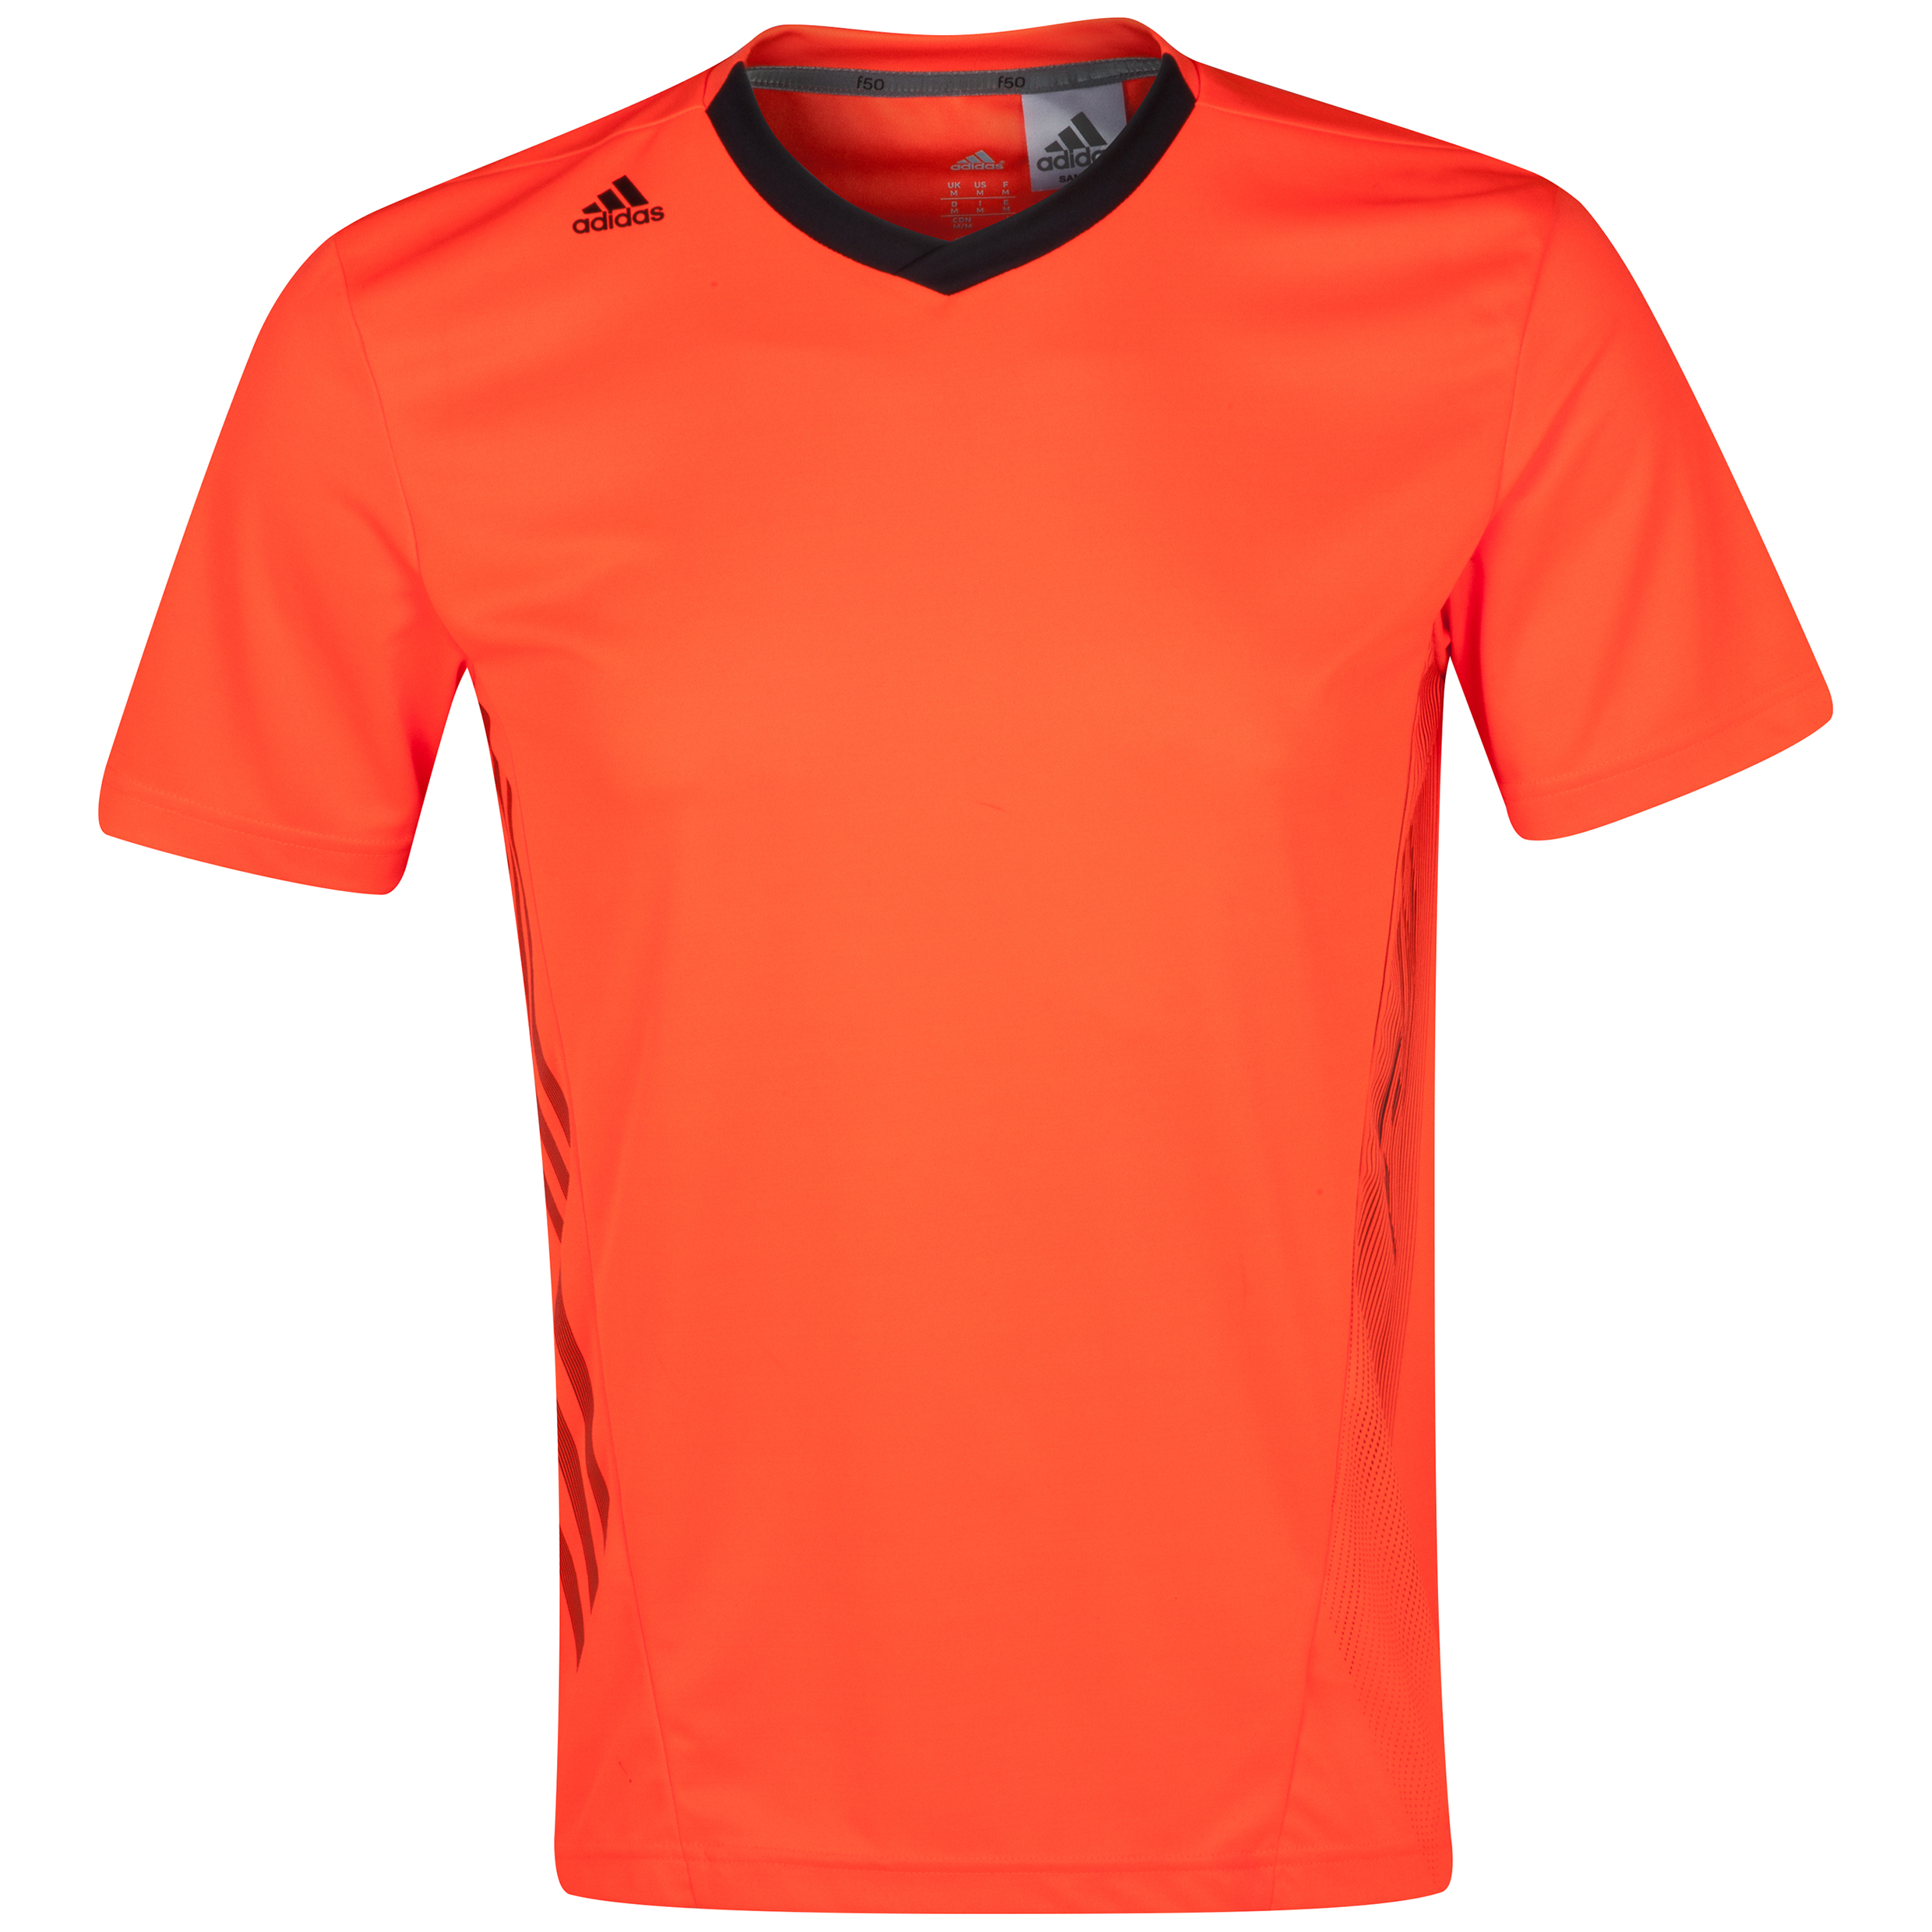 Adidas AdiZero F50 Climacool Training T-shirt Red